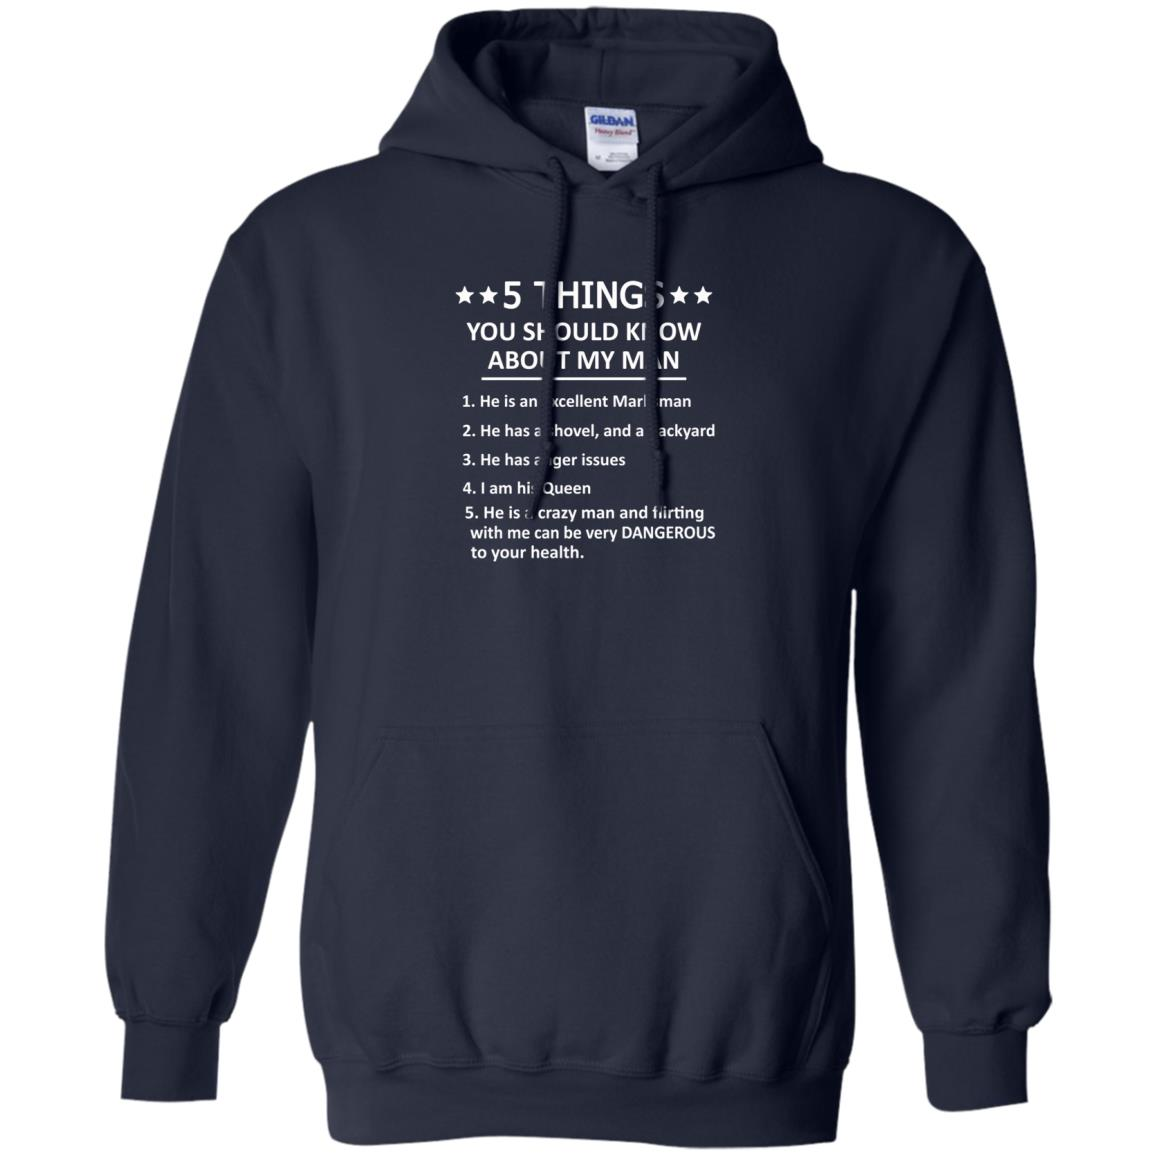 image 1322px 5 Things you should know about my man t shirt, hoodies, tank top